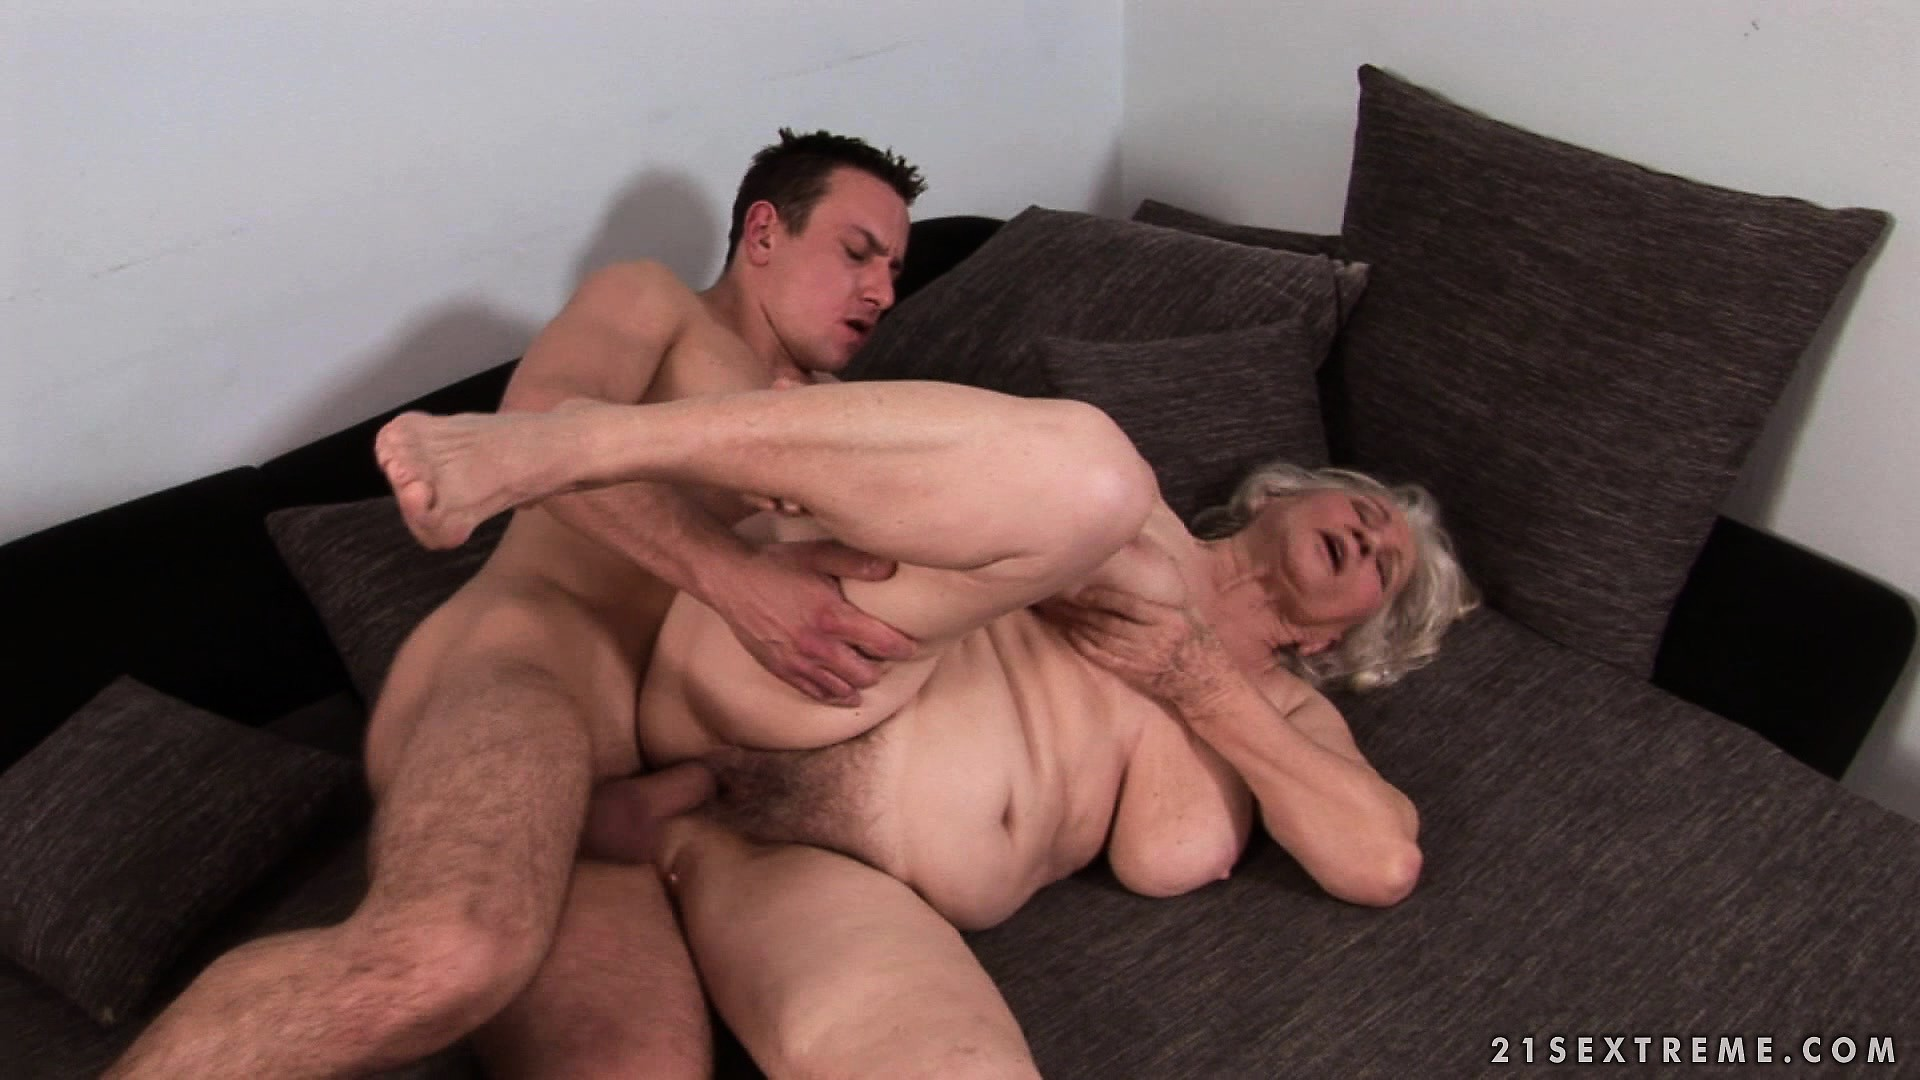 Sexy Cougar Getting Butt Fucked